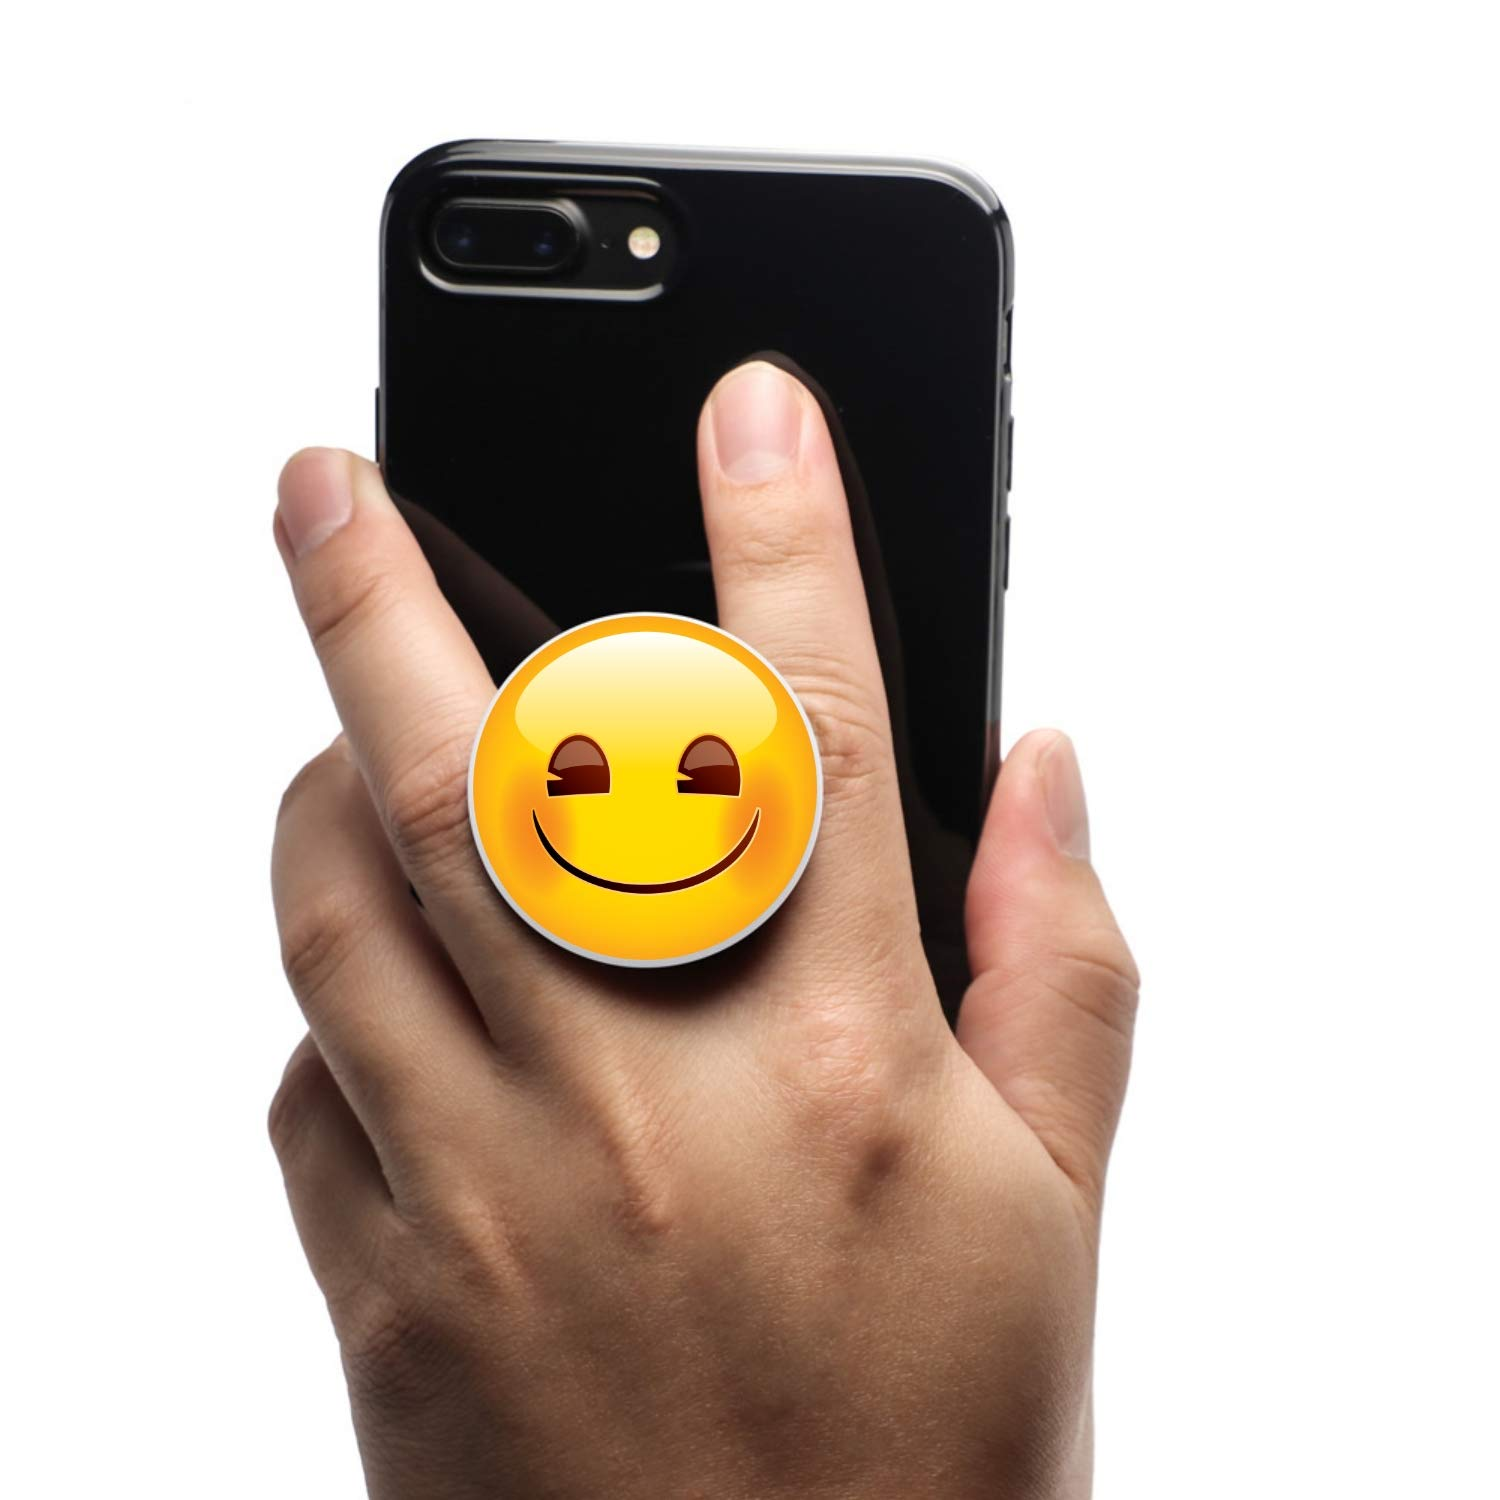 Coolgrips All in one Magnetic Collapsible Cell Phone Grip Mount and Stand for Smartphones and Tablets Emoji Smiley